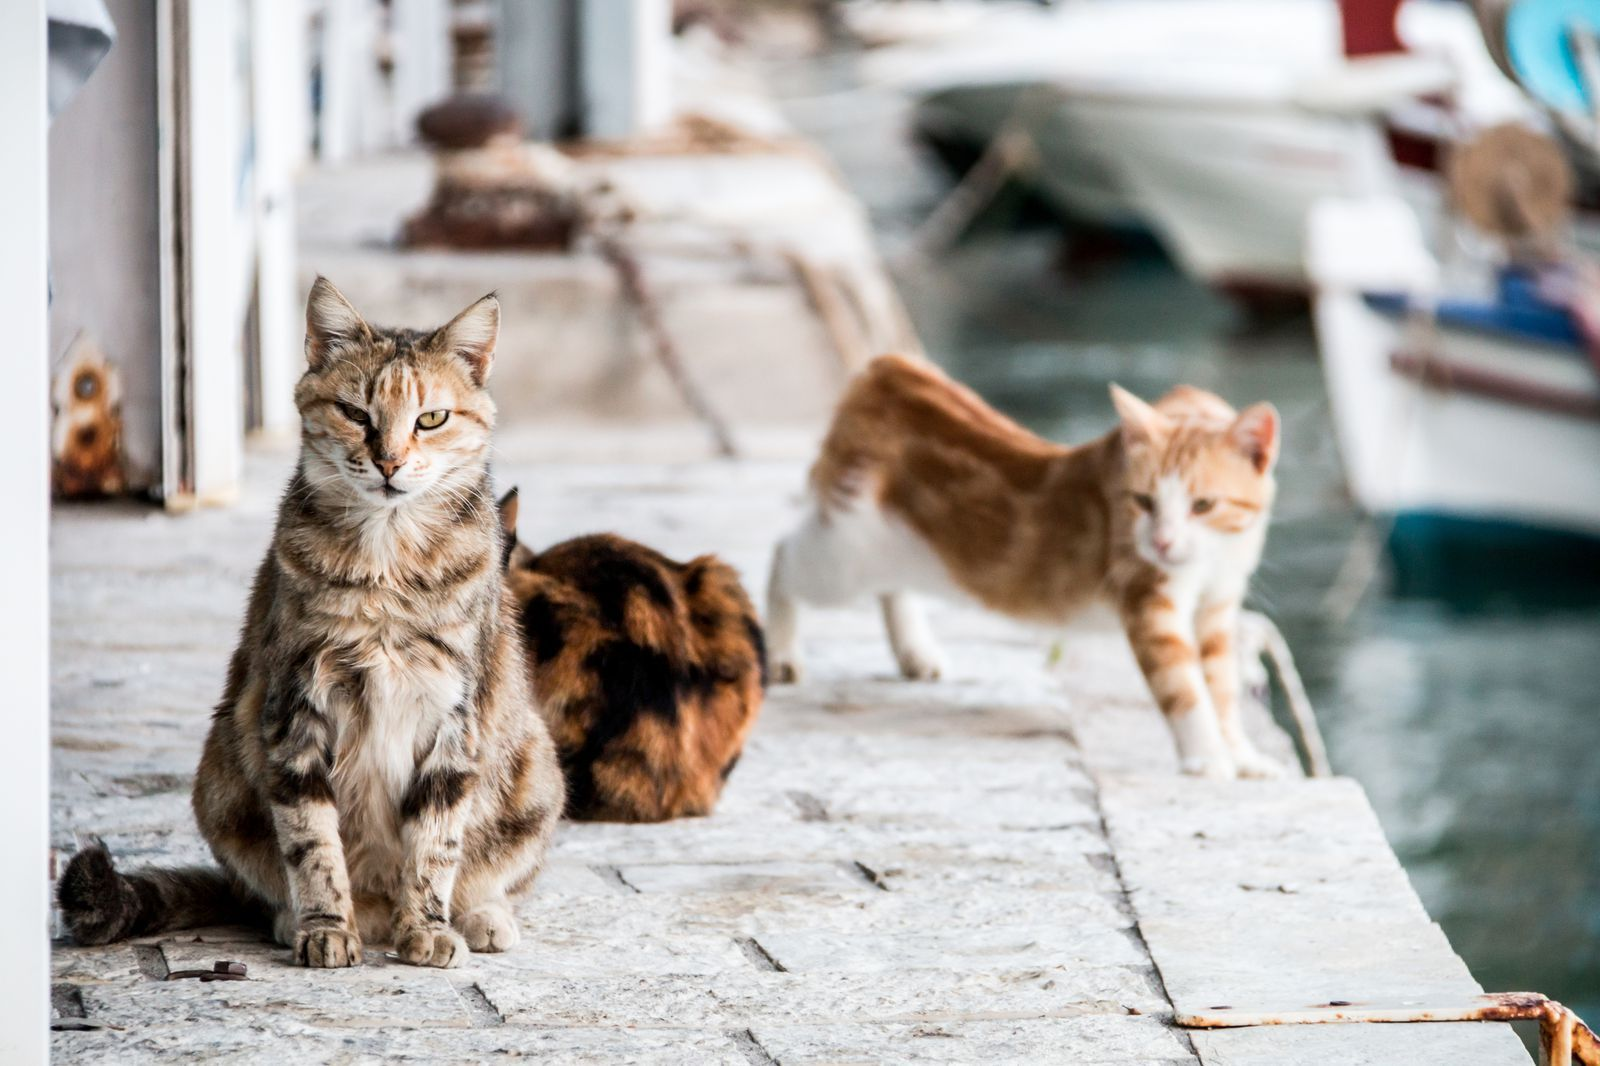 Dream Job Alert! Get Paid to Hang Out with 55 Cats on a